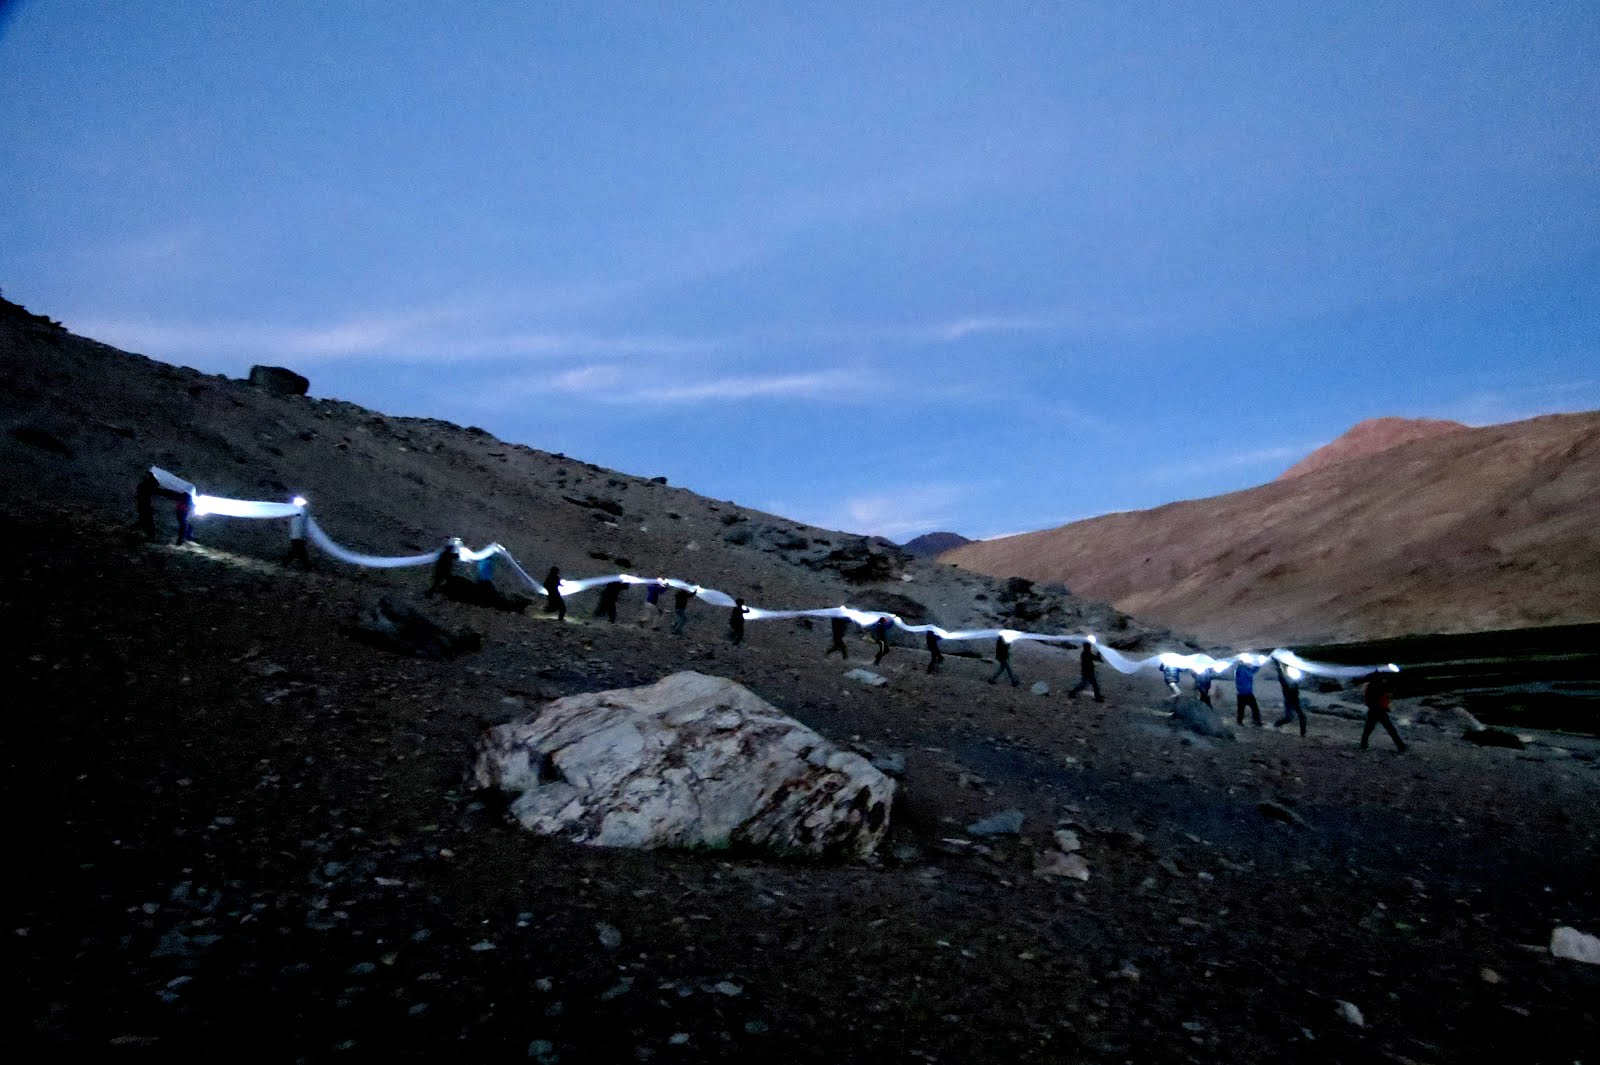 Dd Environmental light Performative Installation, LADAKH 2014